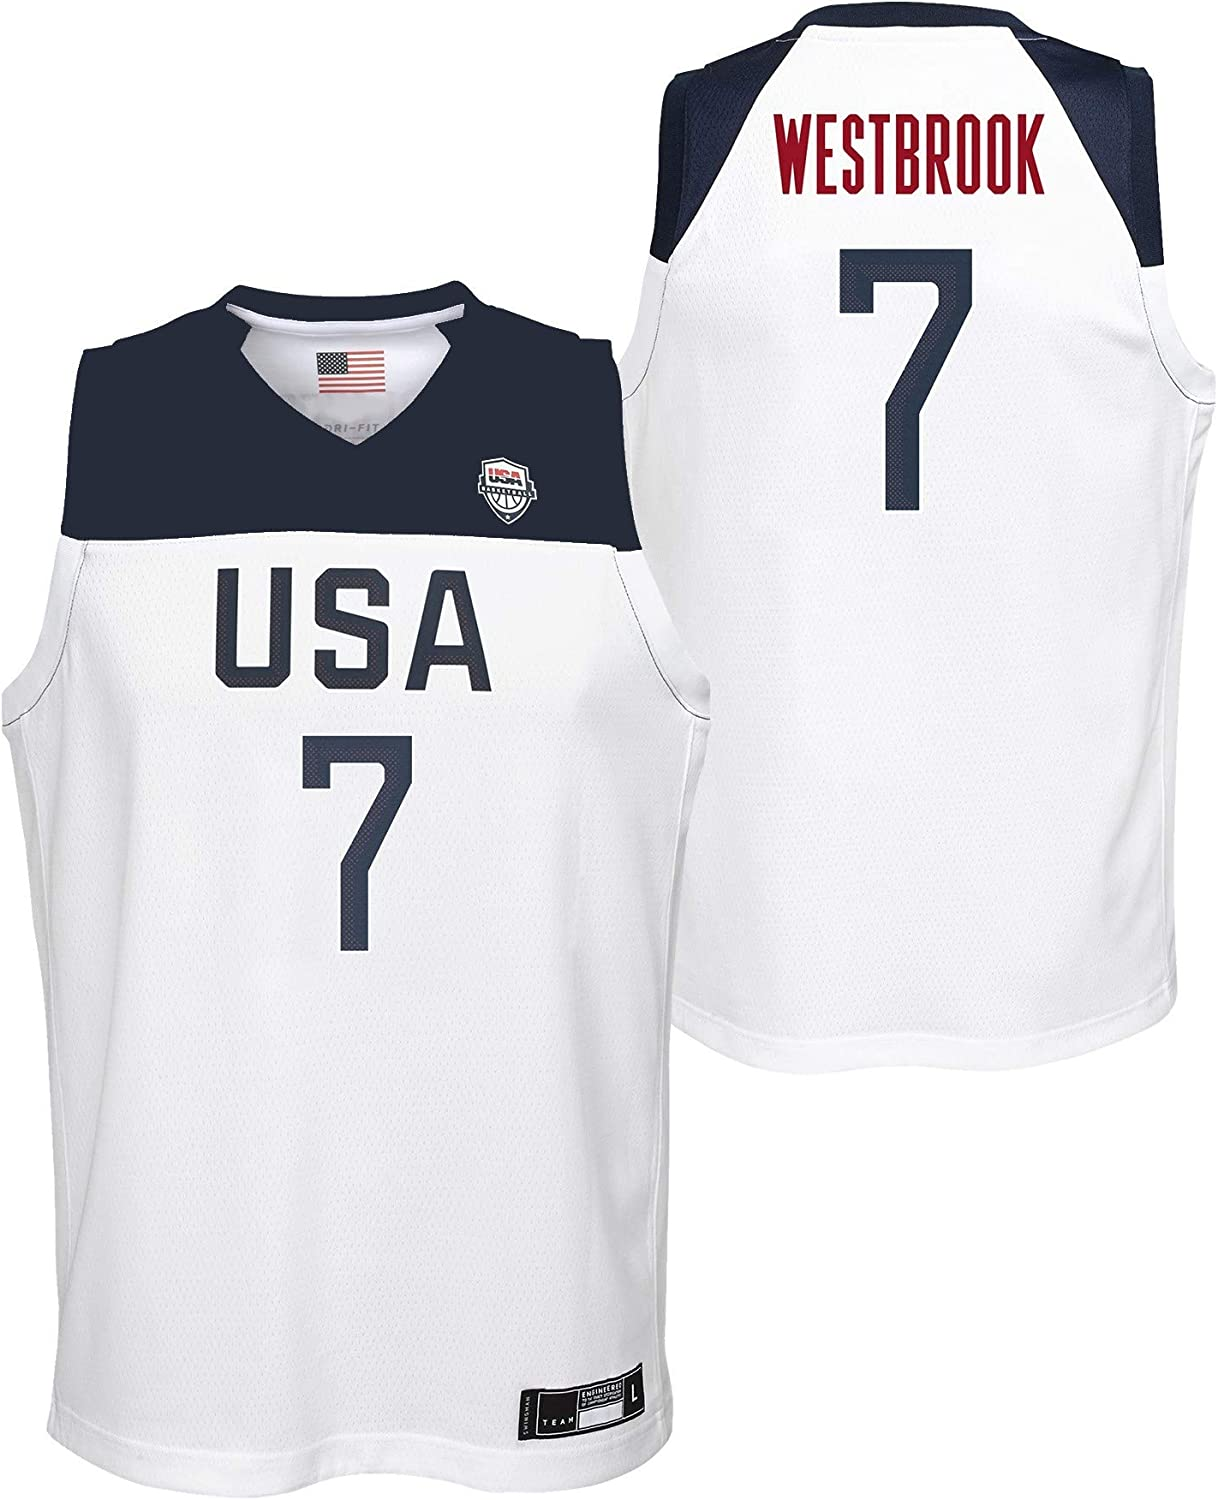 Outerstuff Team USA Basketball Russell Westbrook #7 Home White Swingman Jersey Youth Sizes